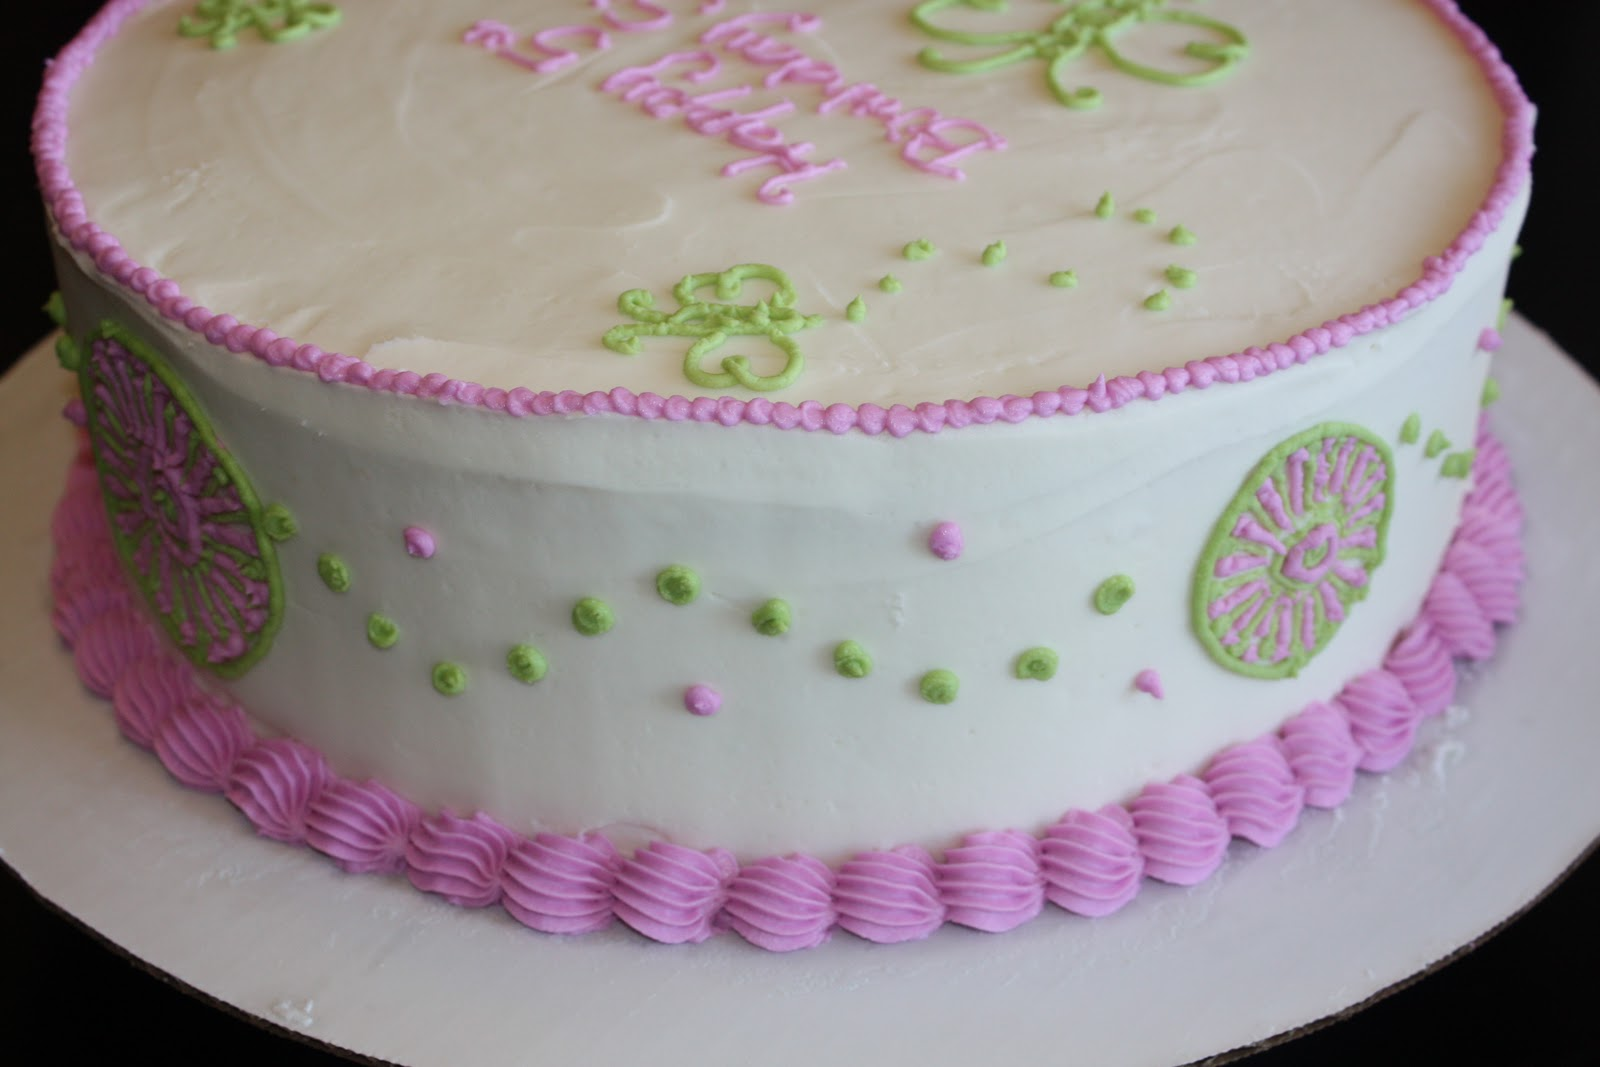 Impressive Buttercream Birthday Cake Decorating Ideas for Girls 1600 x 1067 · 117 kB · jpeg